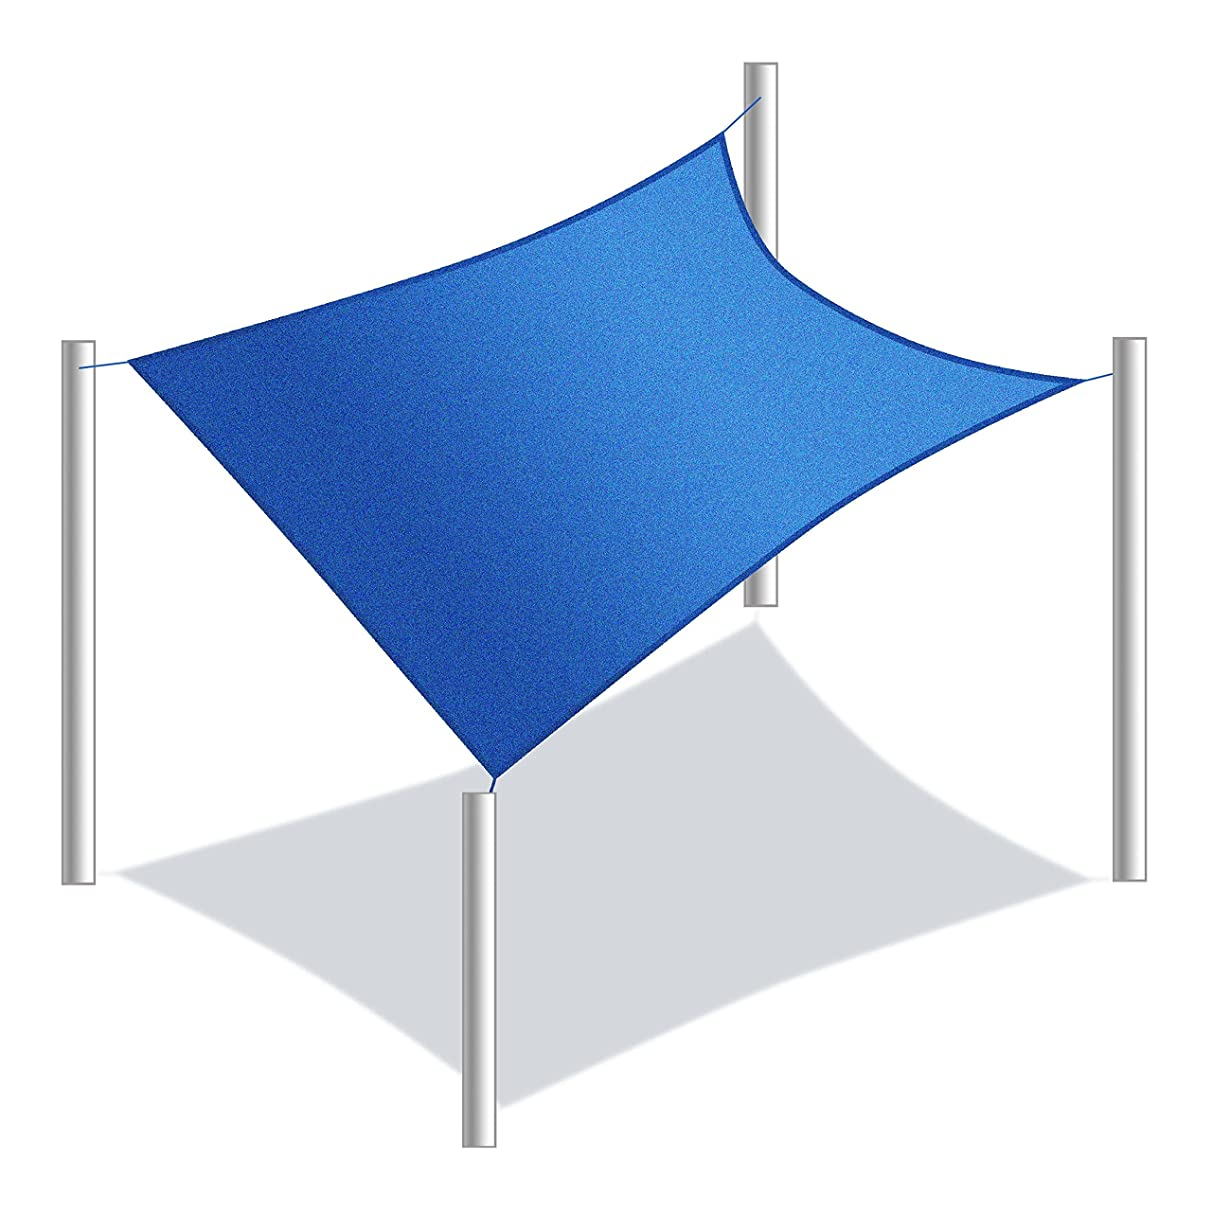 ALEKO SS03REC18X18BL Sun Shade Sail Square Water Resistant Canopy Tent Replacement for Yard Patio Pool 18 x 18 Feet Blue wpl975952